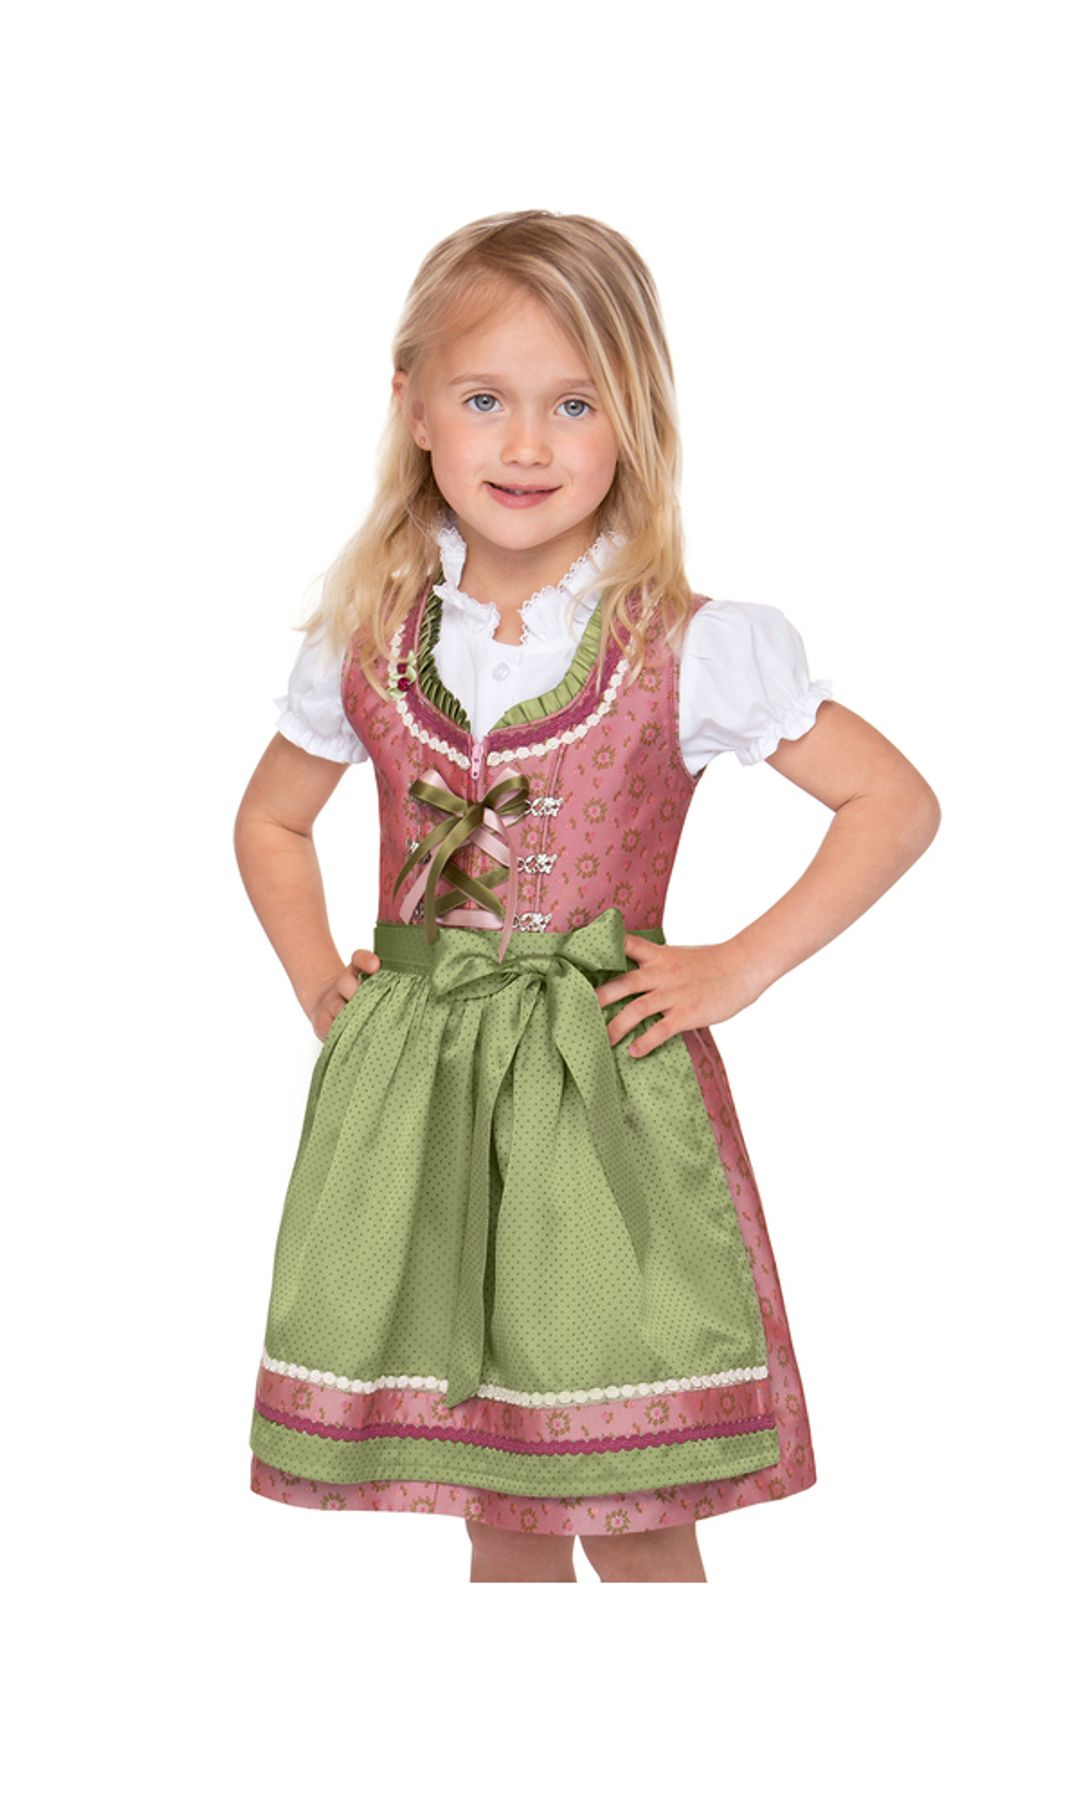 Stockerpoint - Kinder Trachten Dirndl Suki in Rose, Gr. 86-116 – Bild 1